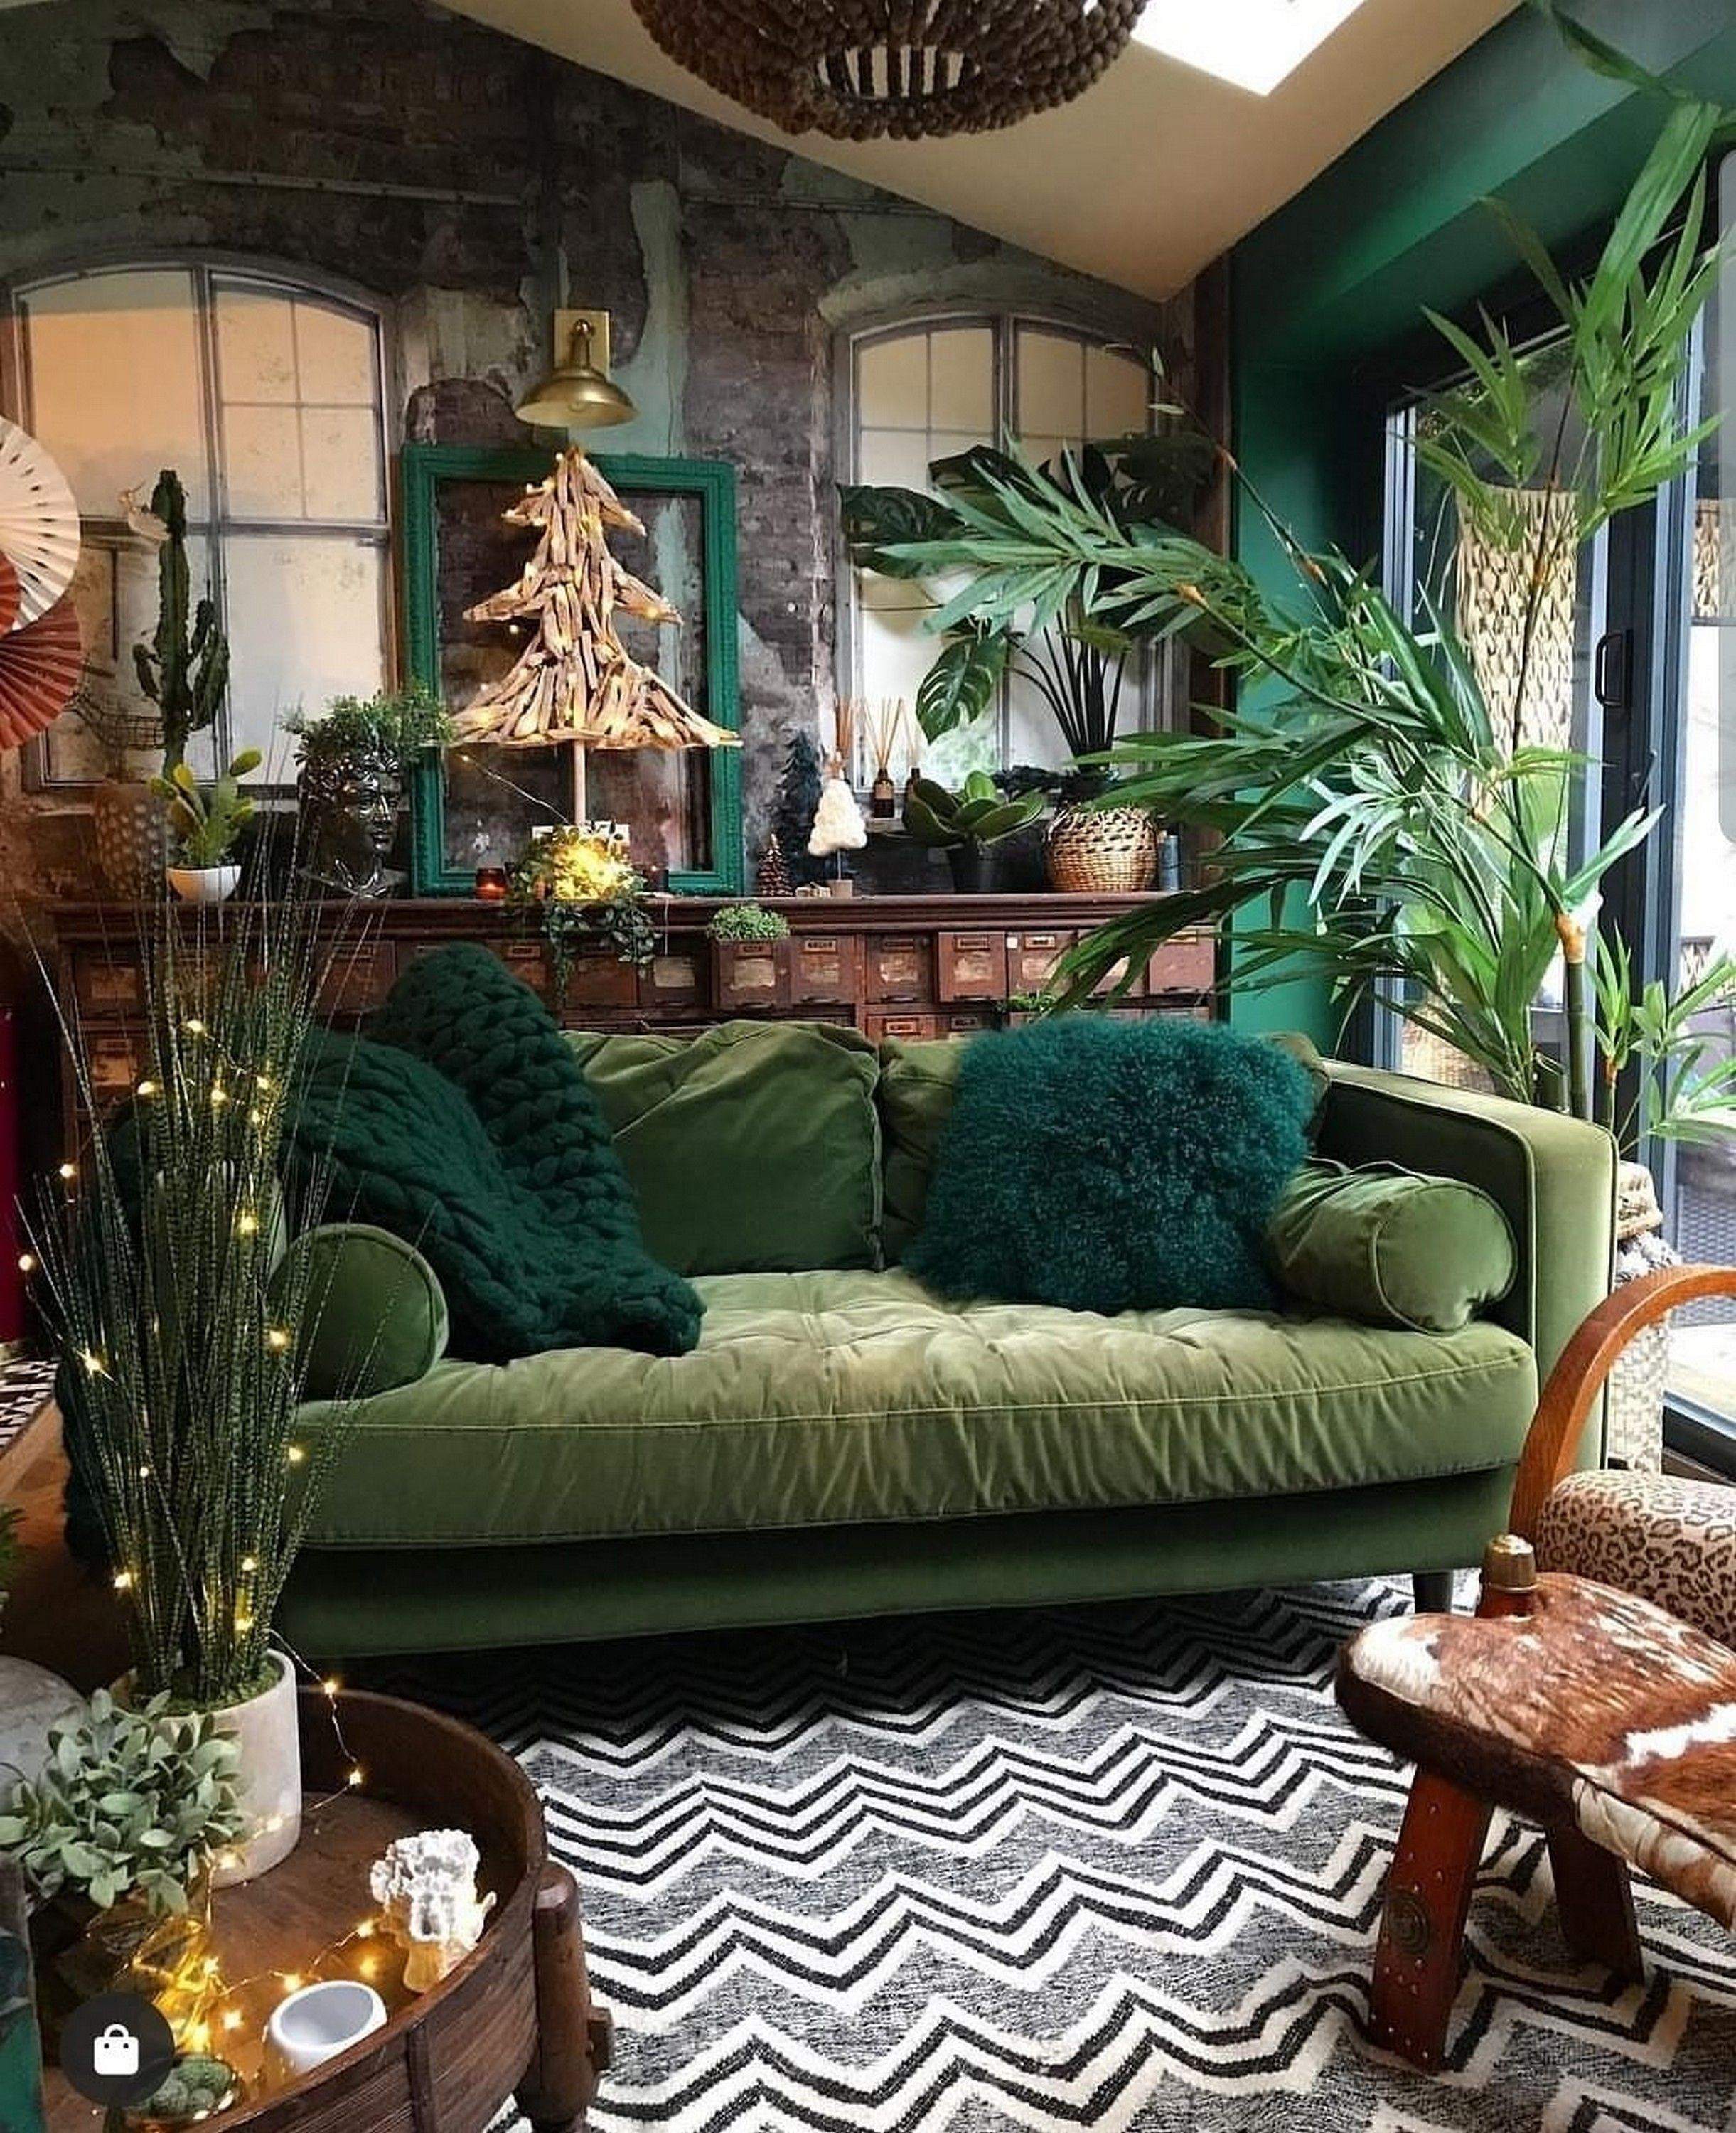 Boho Chic Home Decor Plans And Ideas In 2020 Chic Home Decor Home Home Decor